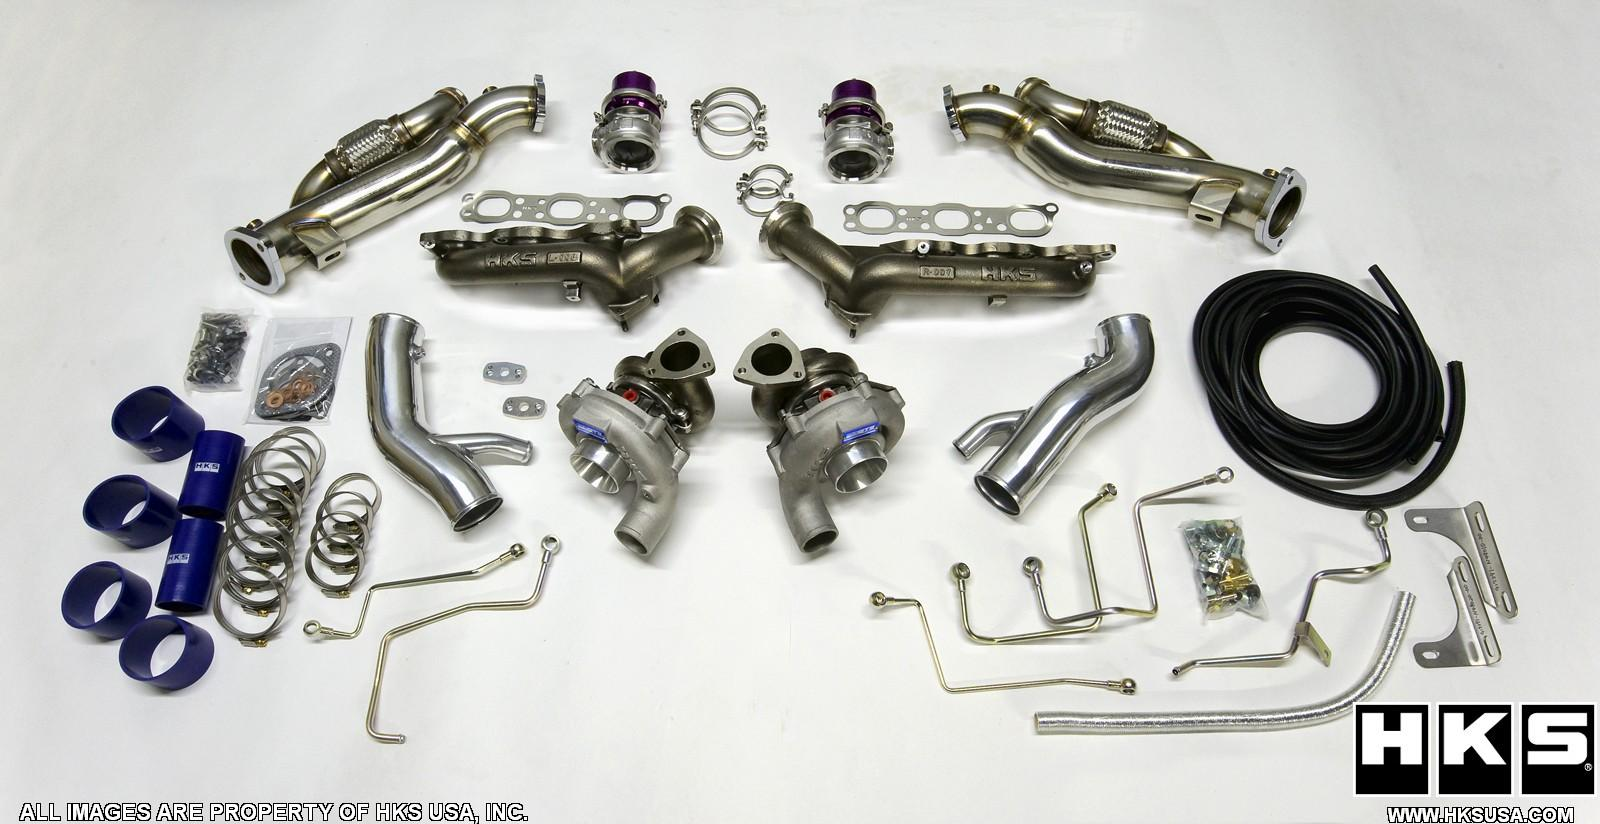 Hks Nissan Gtr Gt800 Turbo Kit Garage Whifbitz